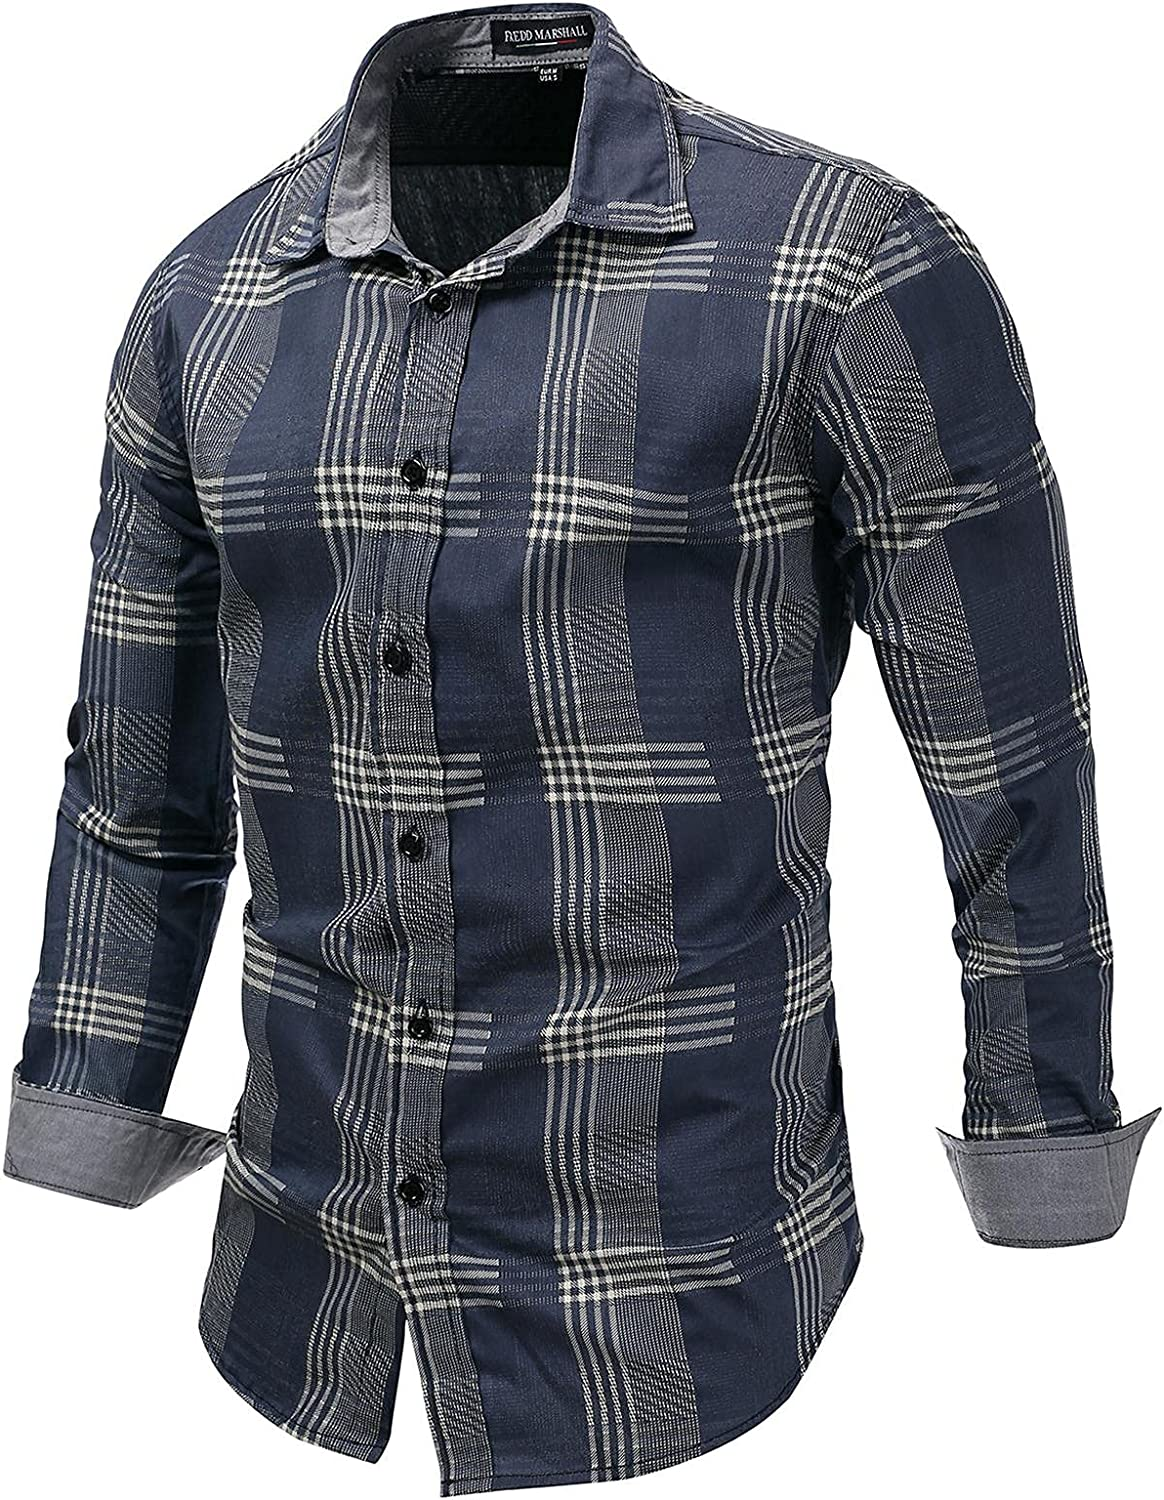 Men's Cotton Long Sleeve Dress Shirts Fashion Stripe Button Down Fitted Shirts Casual Turn Down Collar Blouse